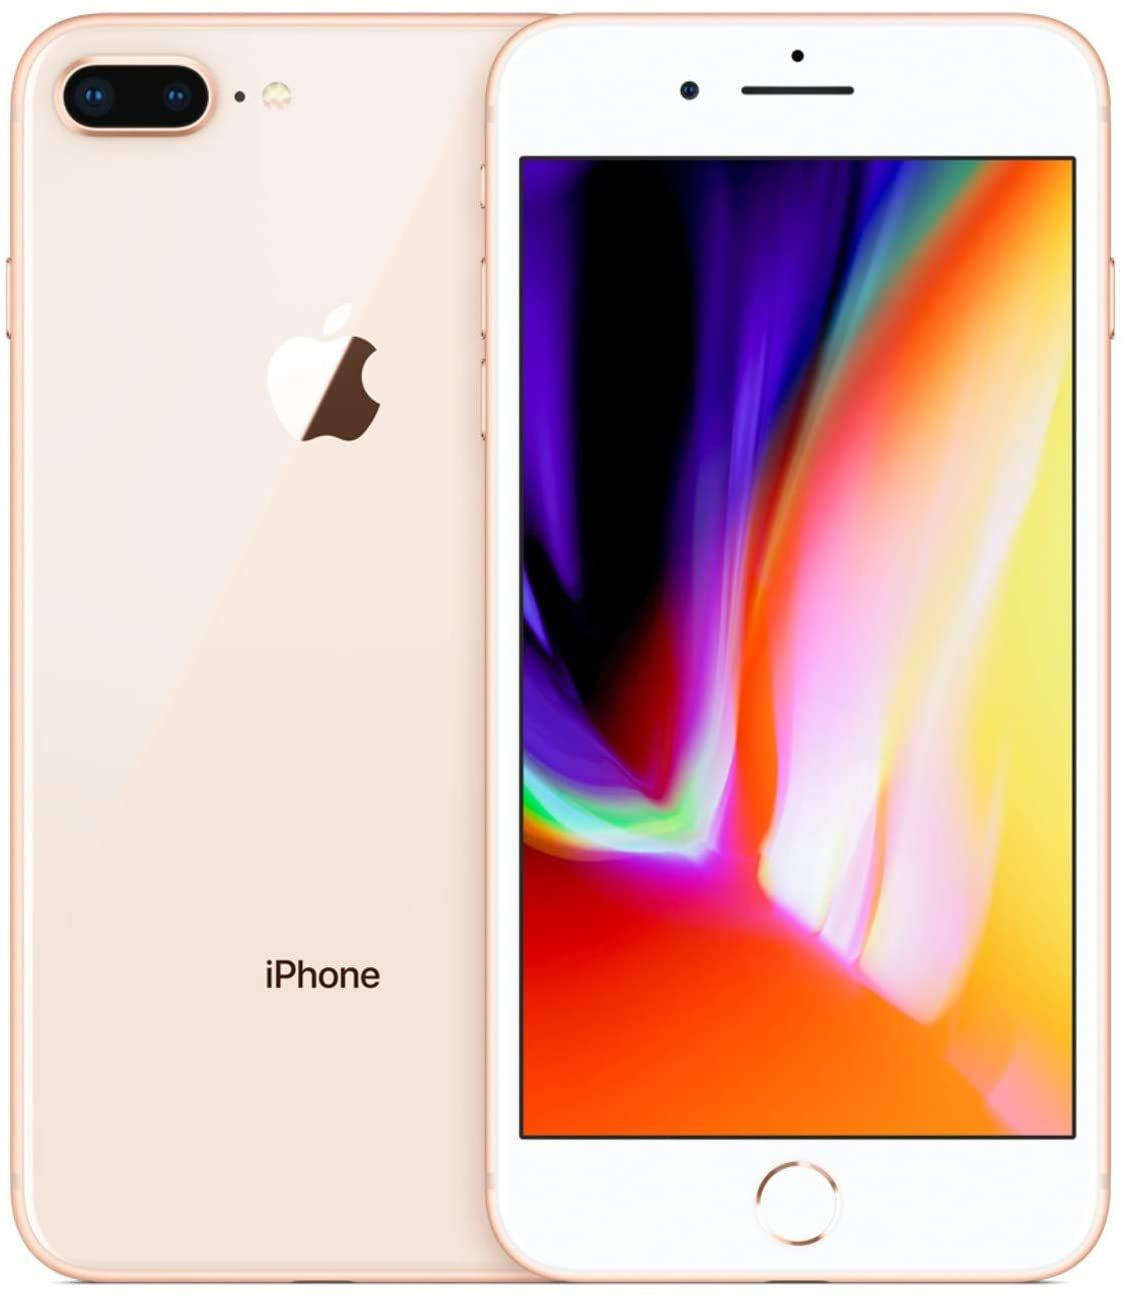 Apple Iphone 8 Plus 256gb Gold For At T T Mobile Renewed Apple Iphone Iphone Price Iphone 8 Plus